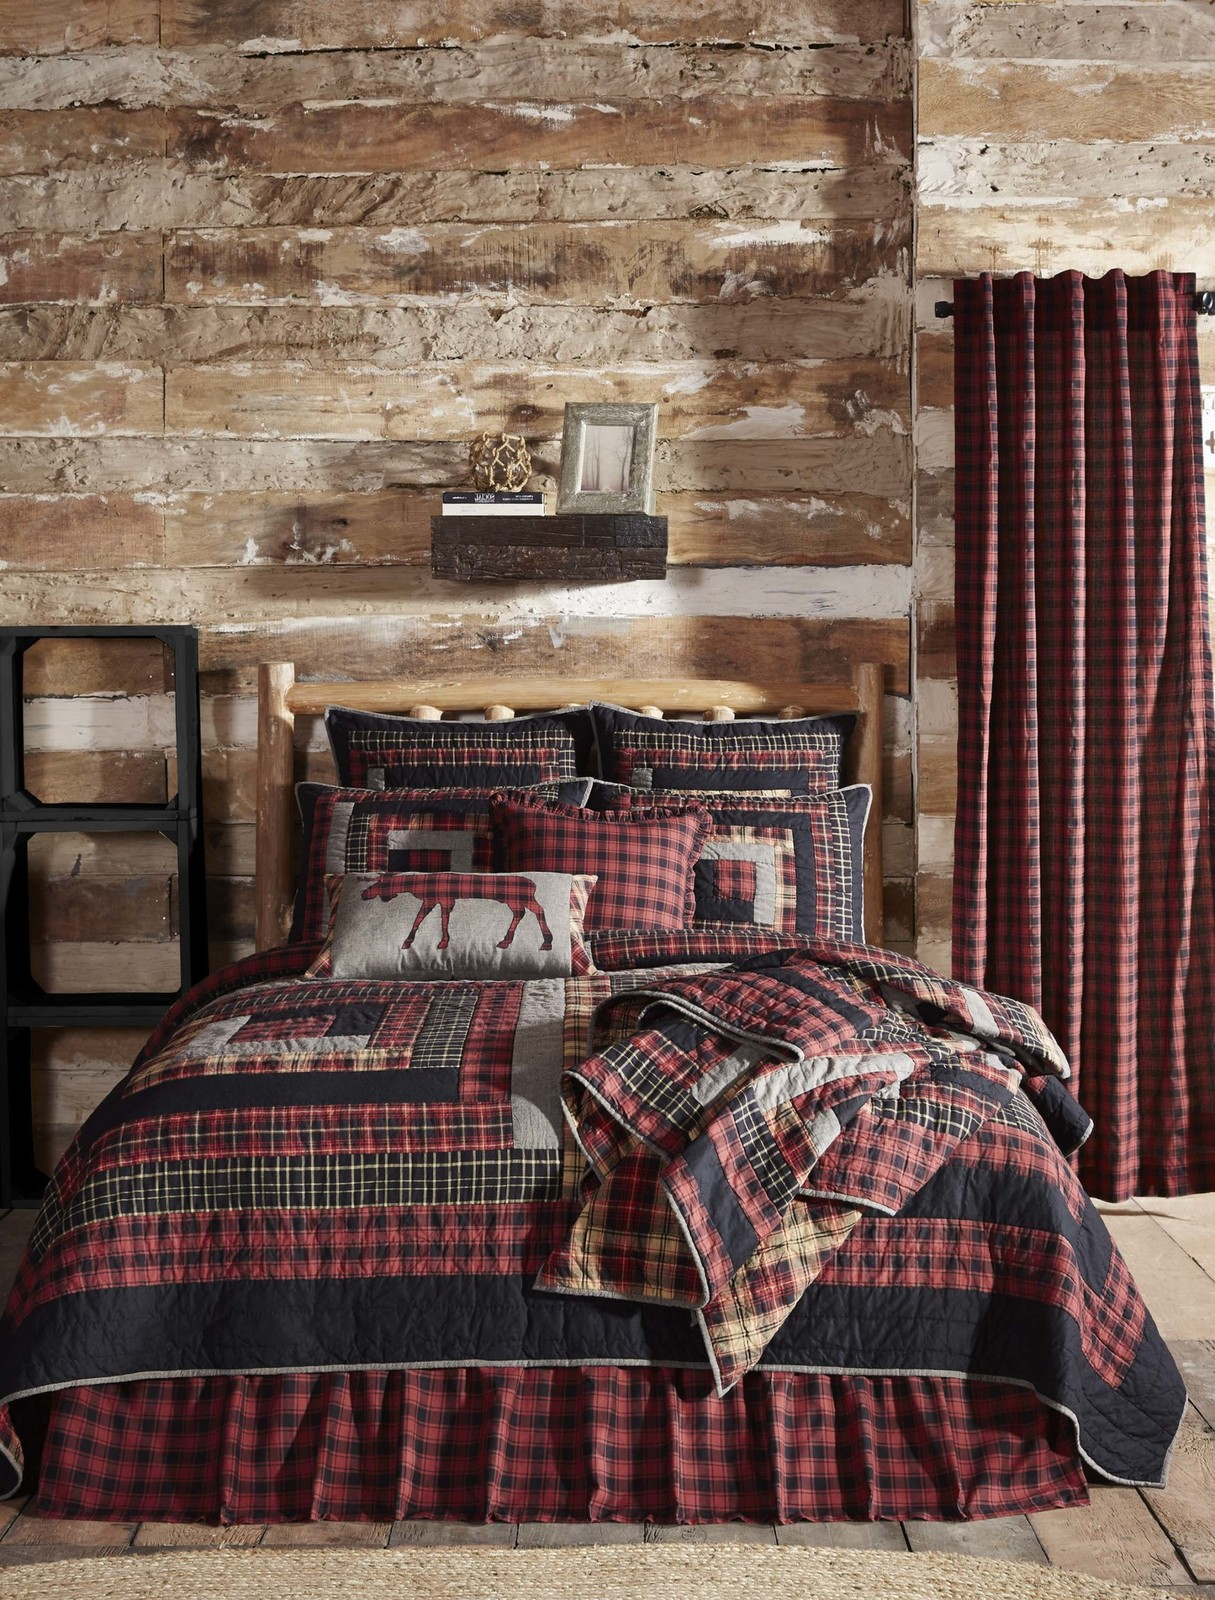 duvet ideas with cool black insert review decor bedroom cover designs check sheets paint checkered wall view buffalo ikea bedding blend match room behr tartan to red quilt lauren ralph checked and colors plaid